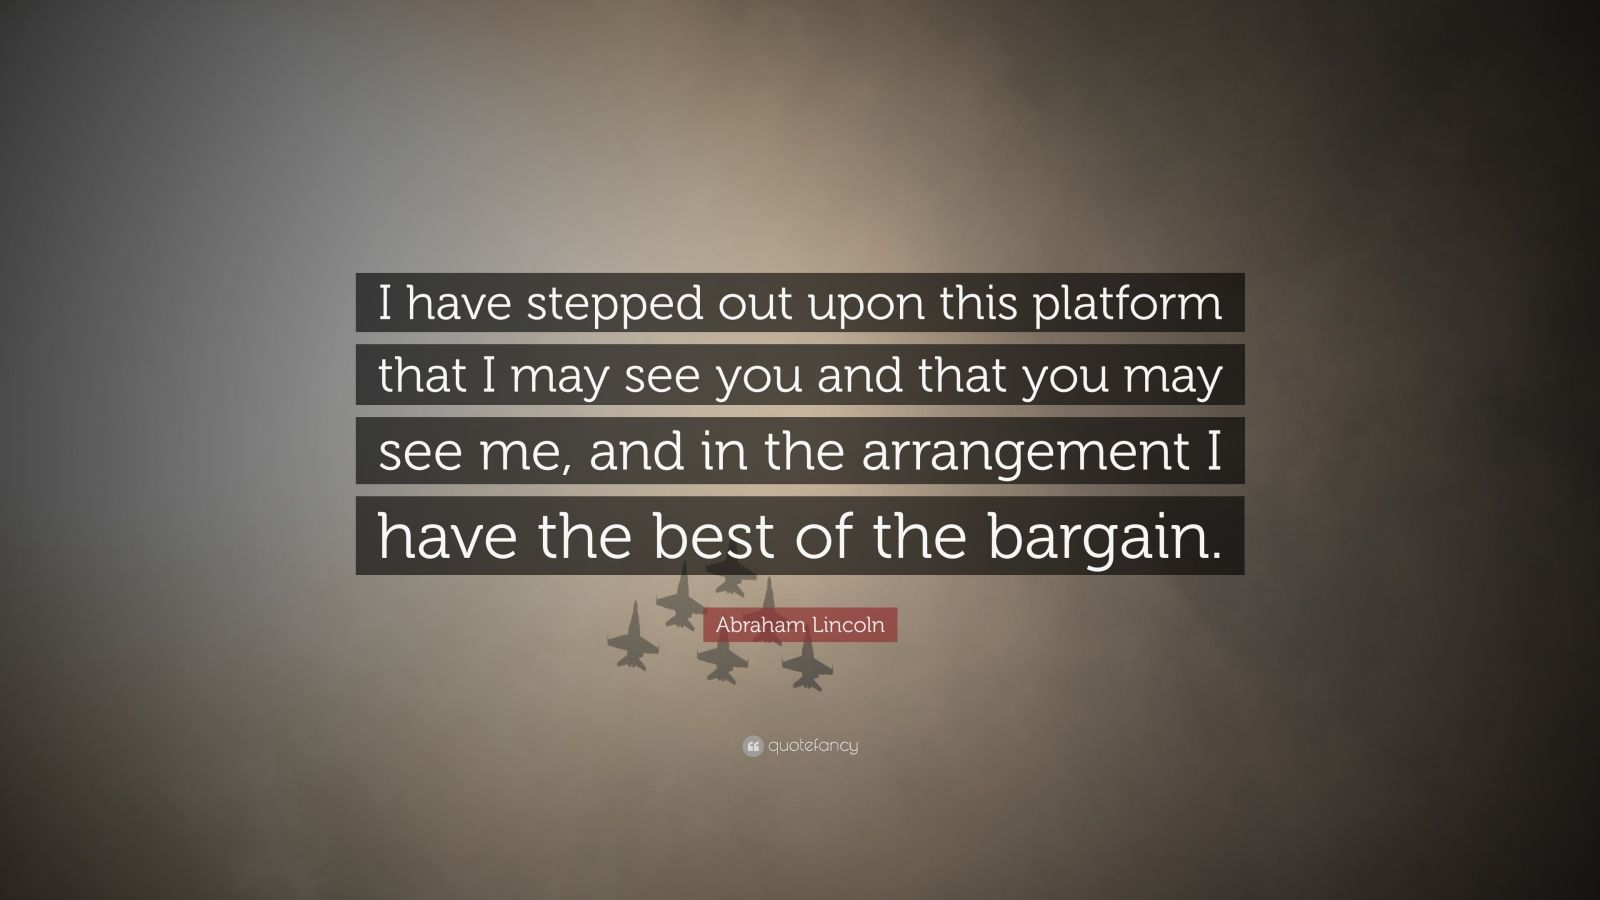 """Abraham Lincoln Quote: """"I have stepped out upon this platform that I may see you and that you may see me, and in the arrangement I have the best of the bargain."""""""